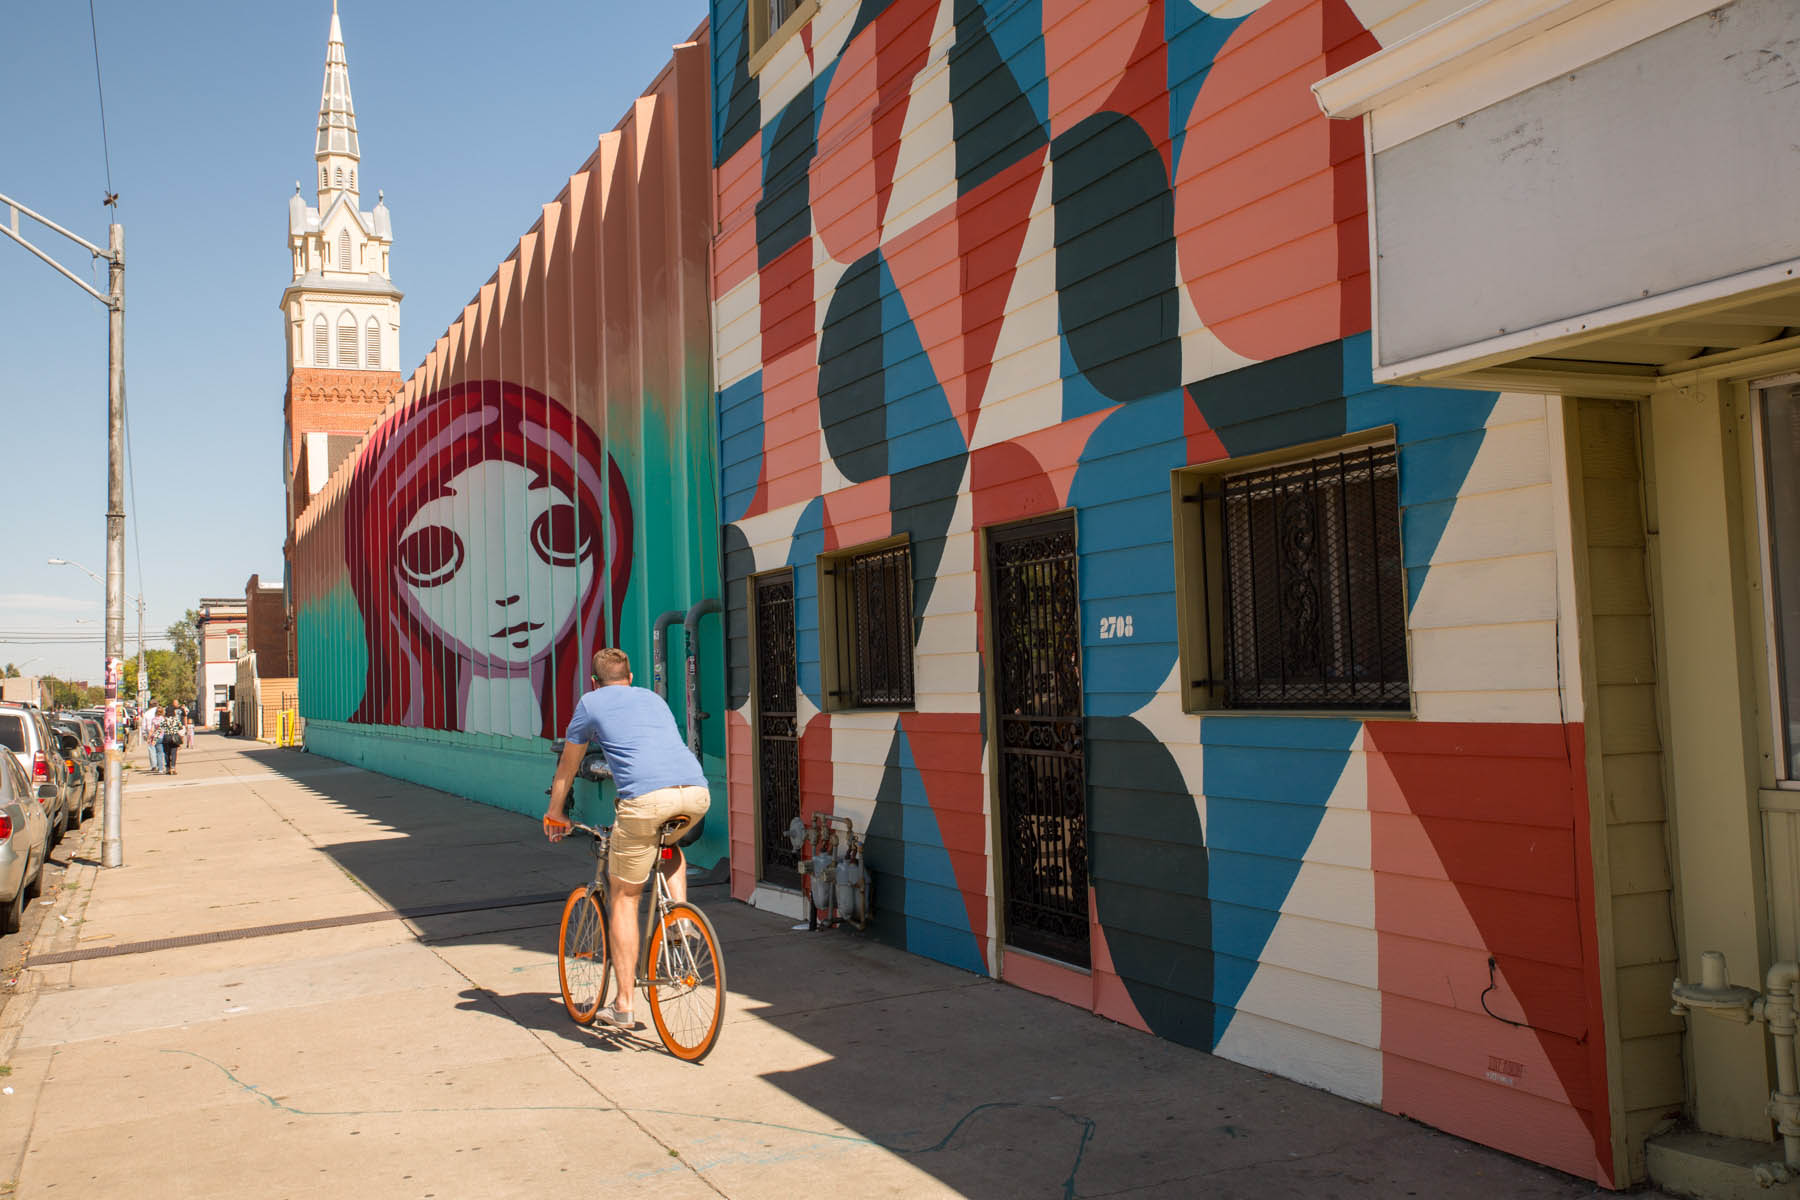 Walk, Bike, Park - Two-way bike lanes and Denver B-Cycle make it easy to get around. Explore RiNo in style in an eTuk or in a pedicab, with multiple stops throughout the neighborhood. Looking for an insider's guide to RiNo? Check out Drink RiNo.